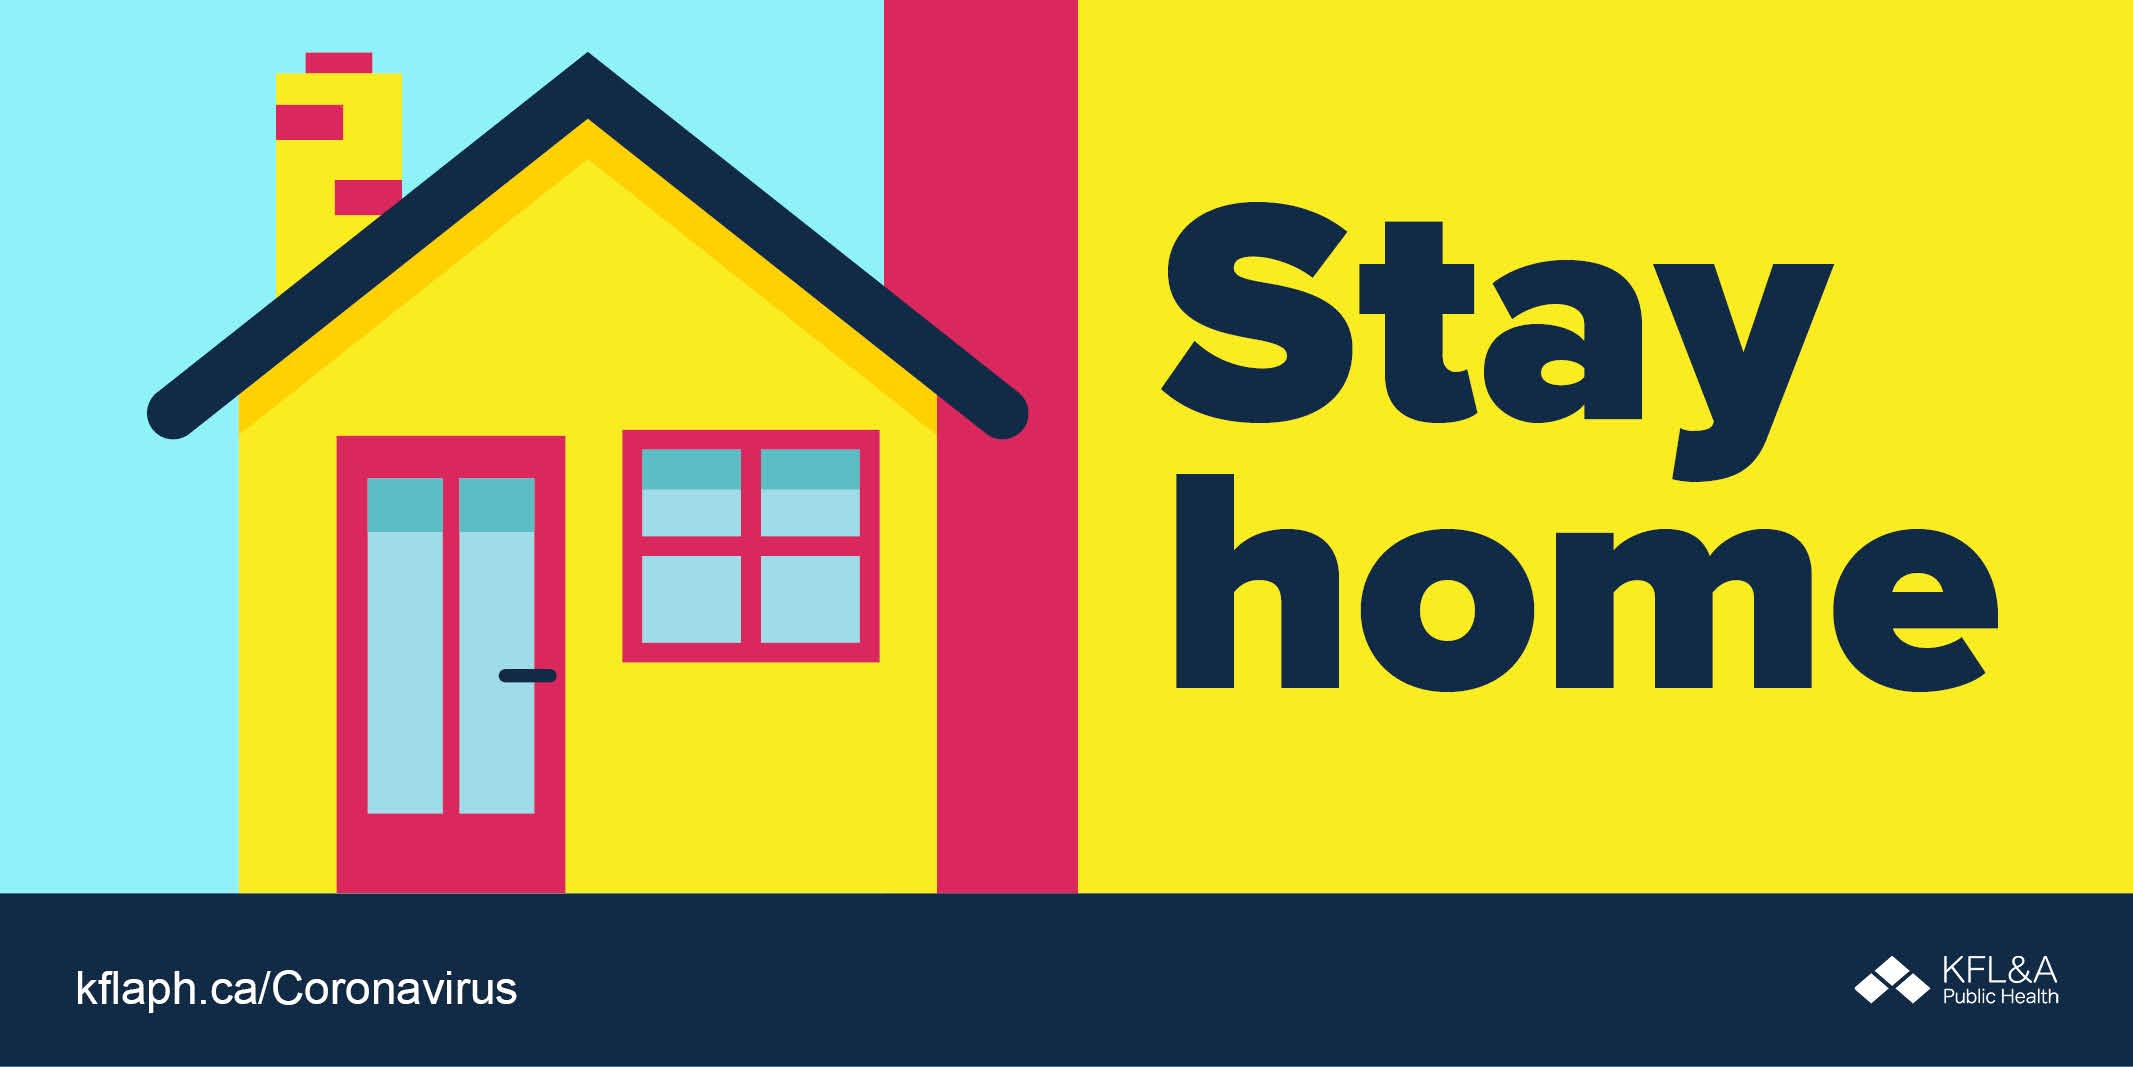 Illustration of a house with text overlay stating Stay Home